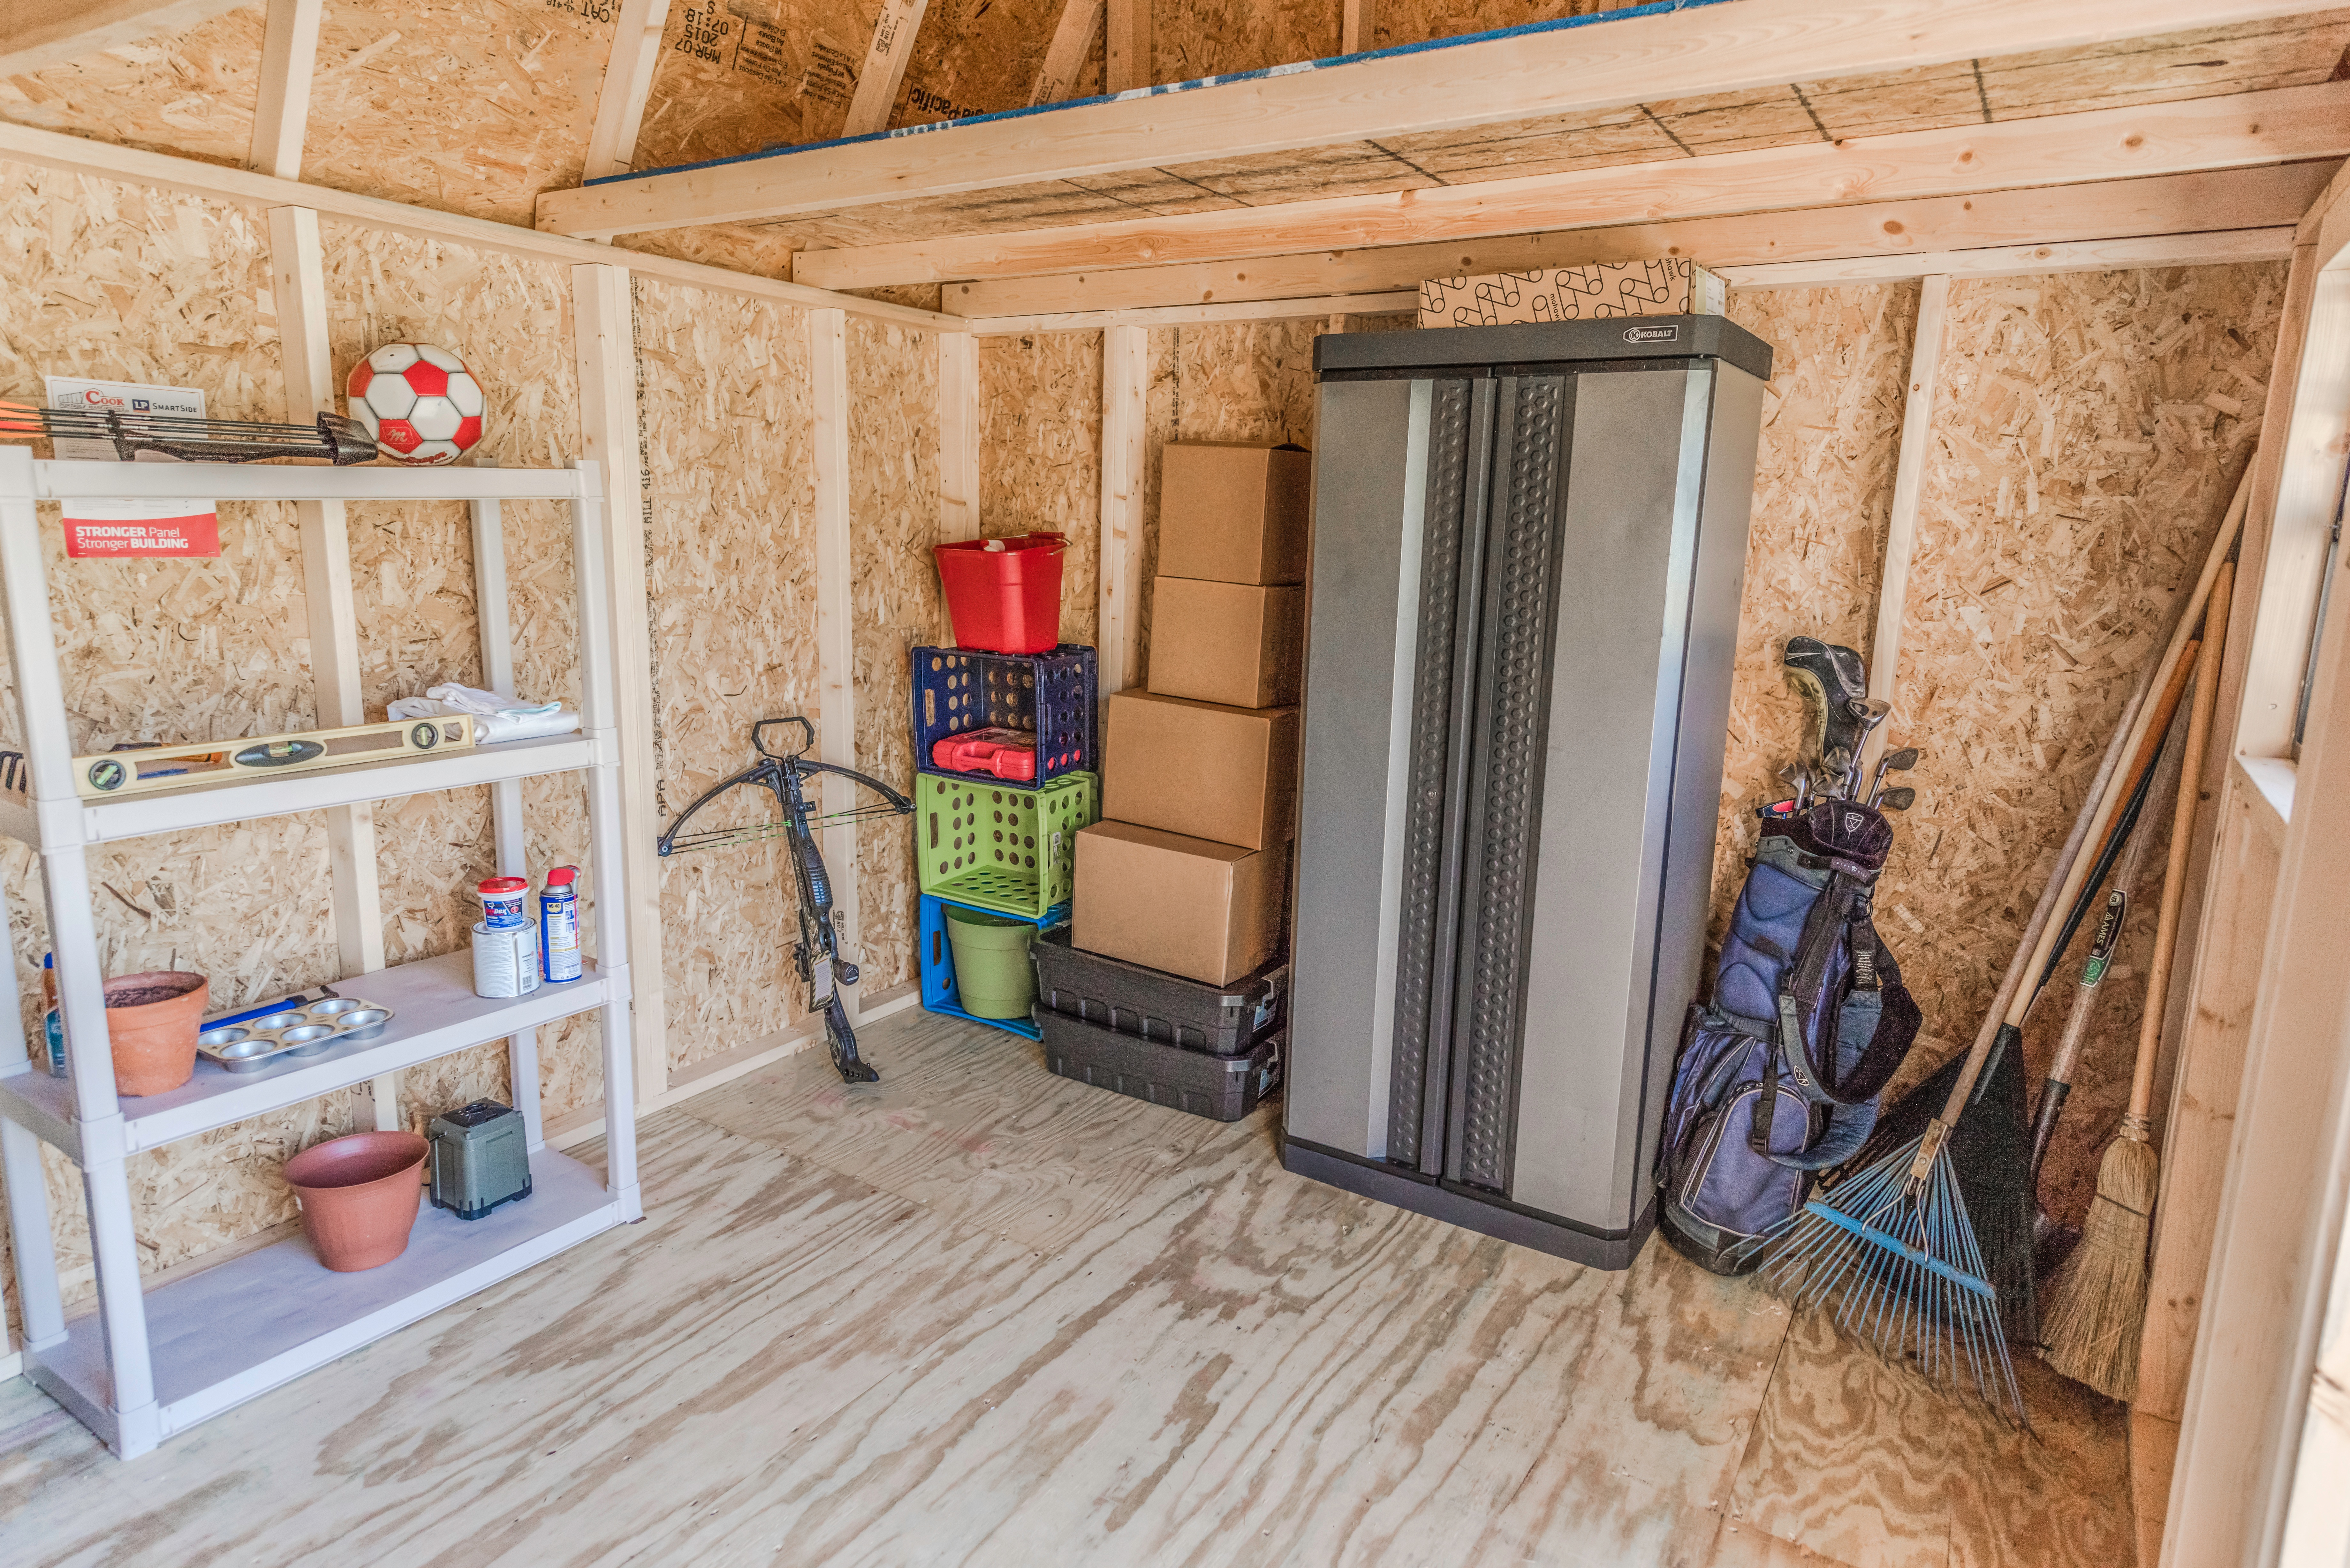 DIY Shelving Options for your Shed